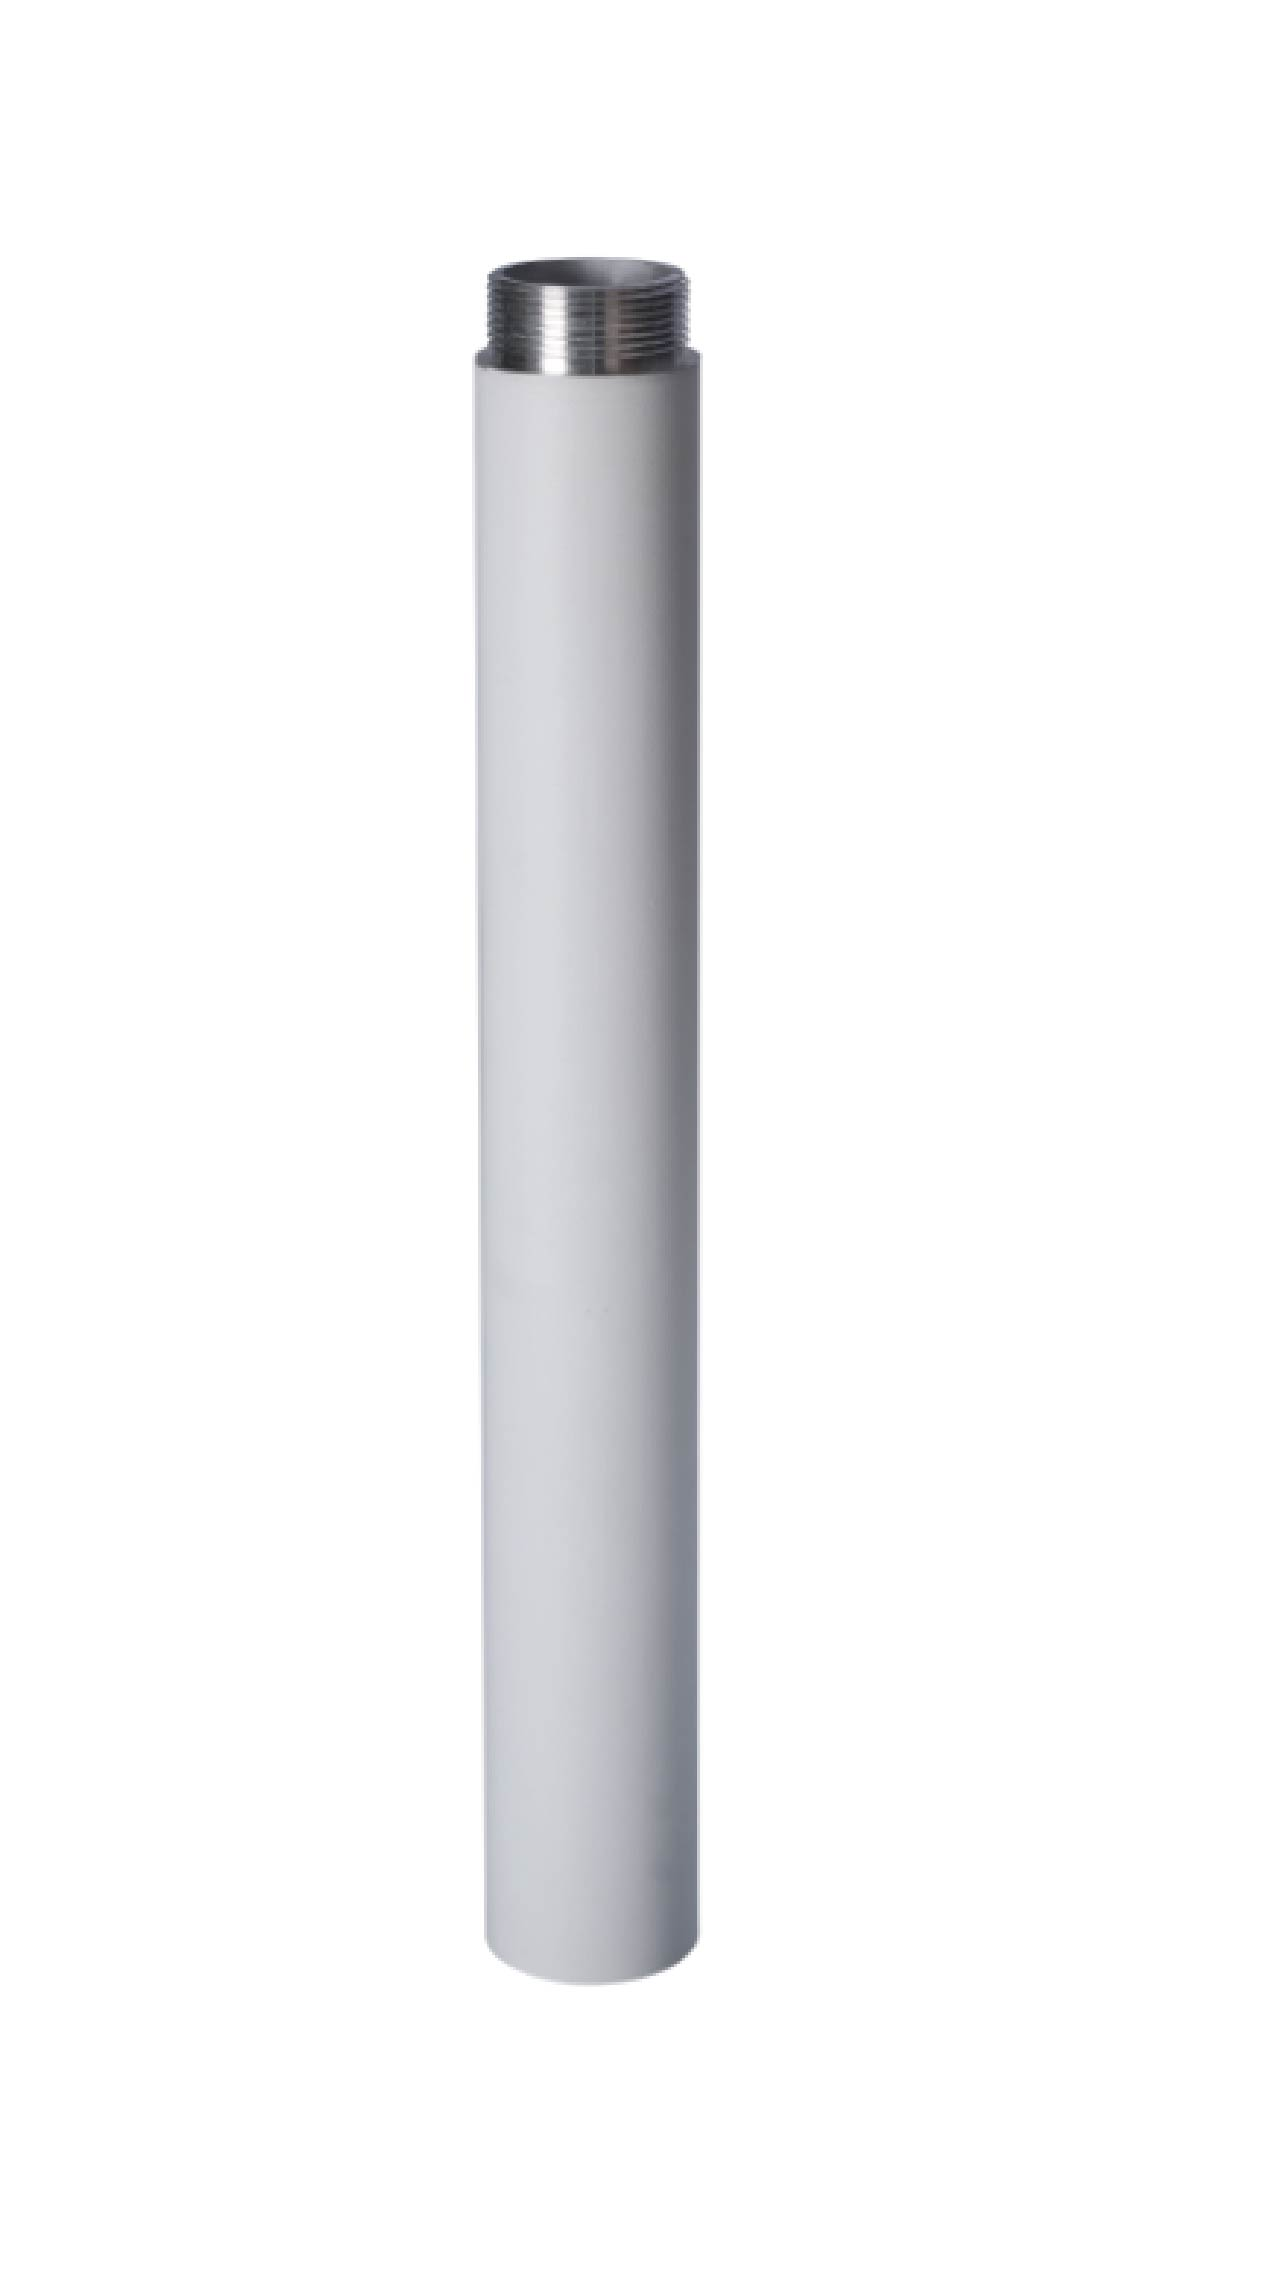 Ceiling mount 40cm (15.7 inch) extension for LE 261